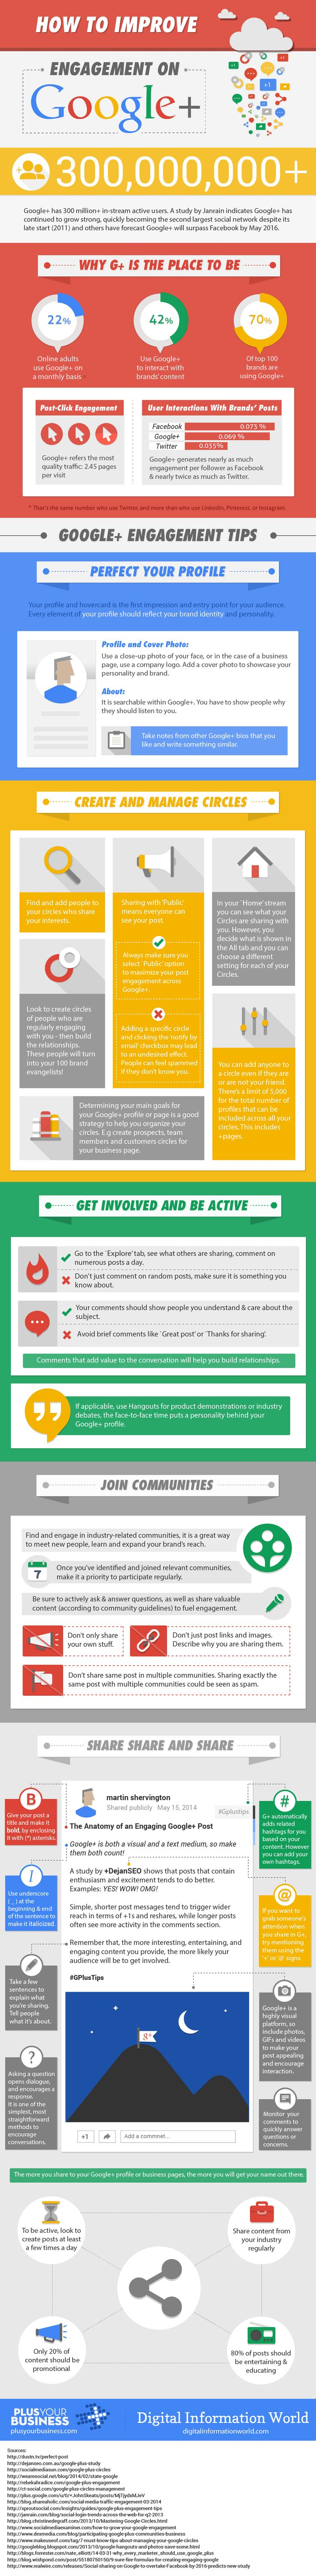 How To Improve Engagement on Google+ - #infographic #socialmedia #GooglePlus For Business Marketing